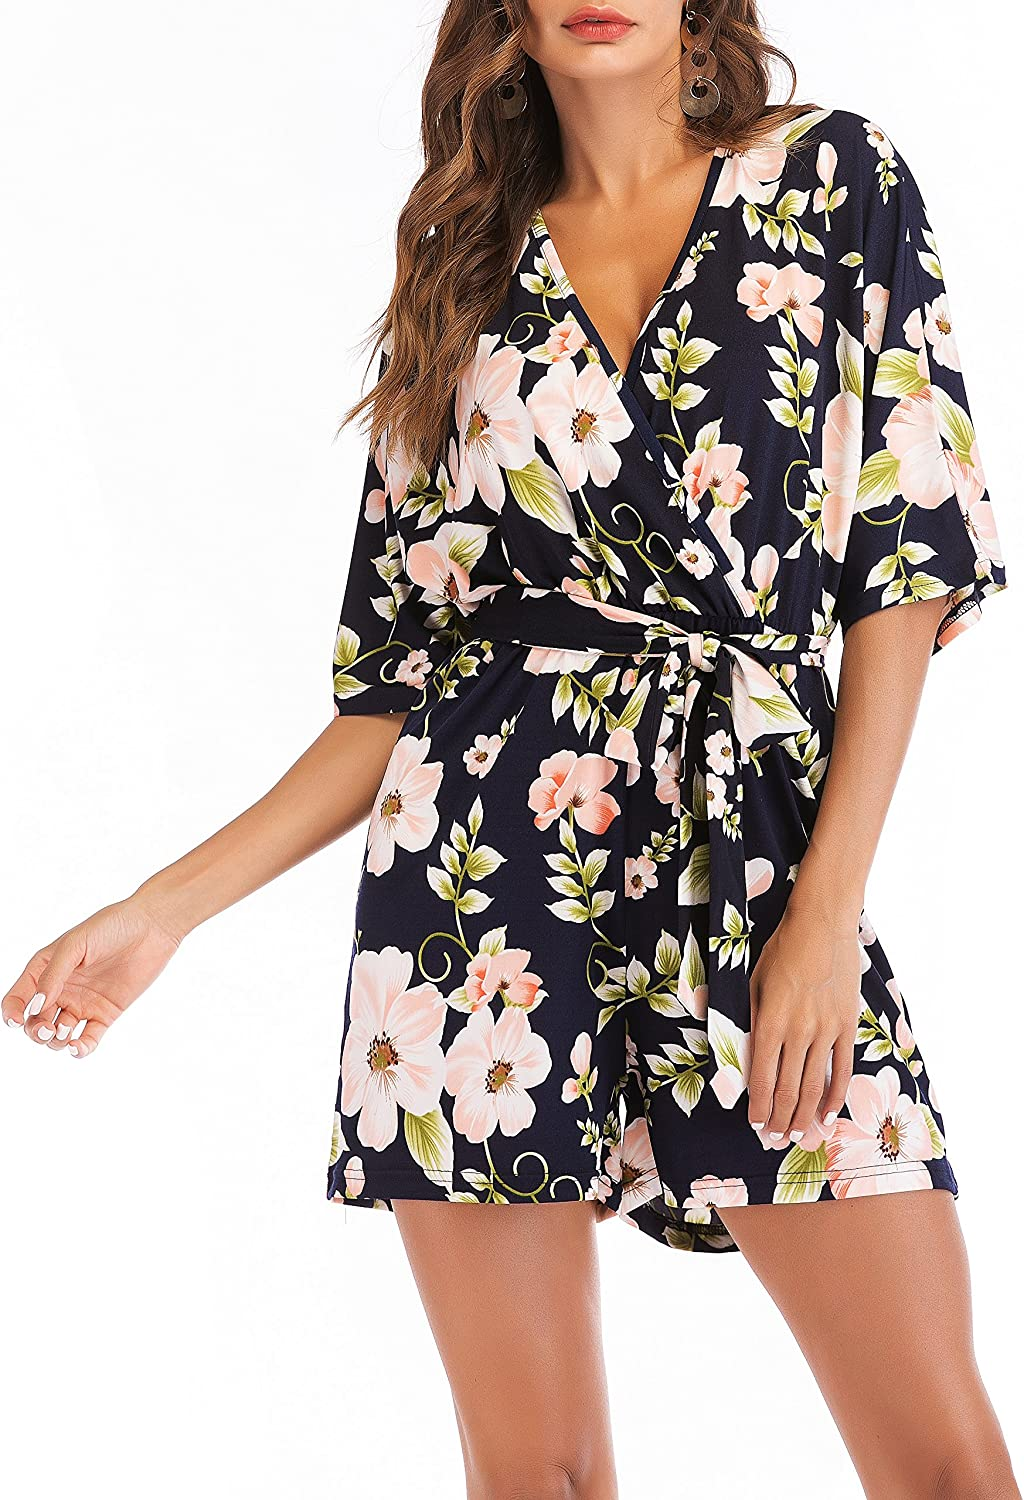 SUNNOW Women's Short Romper Jumpsuit Sexy V Neck Solid Or Floral Printed 3 4 Sleeves Backless